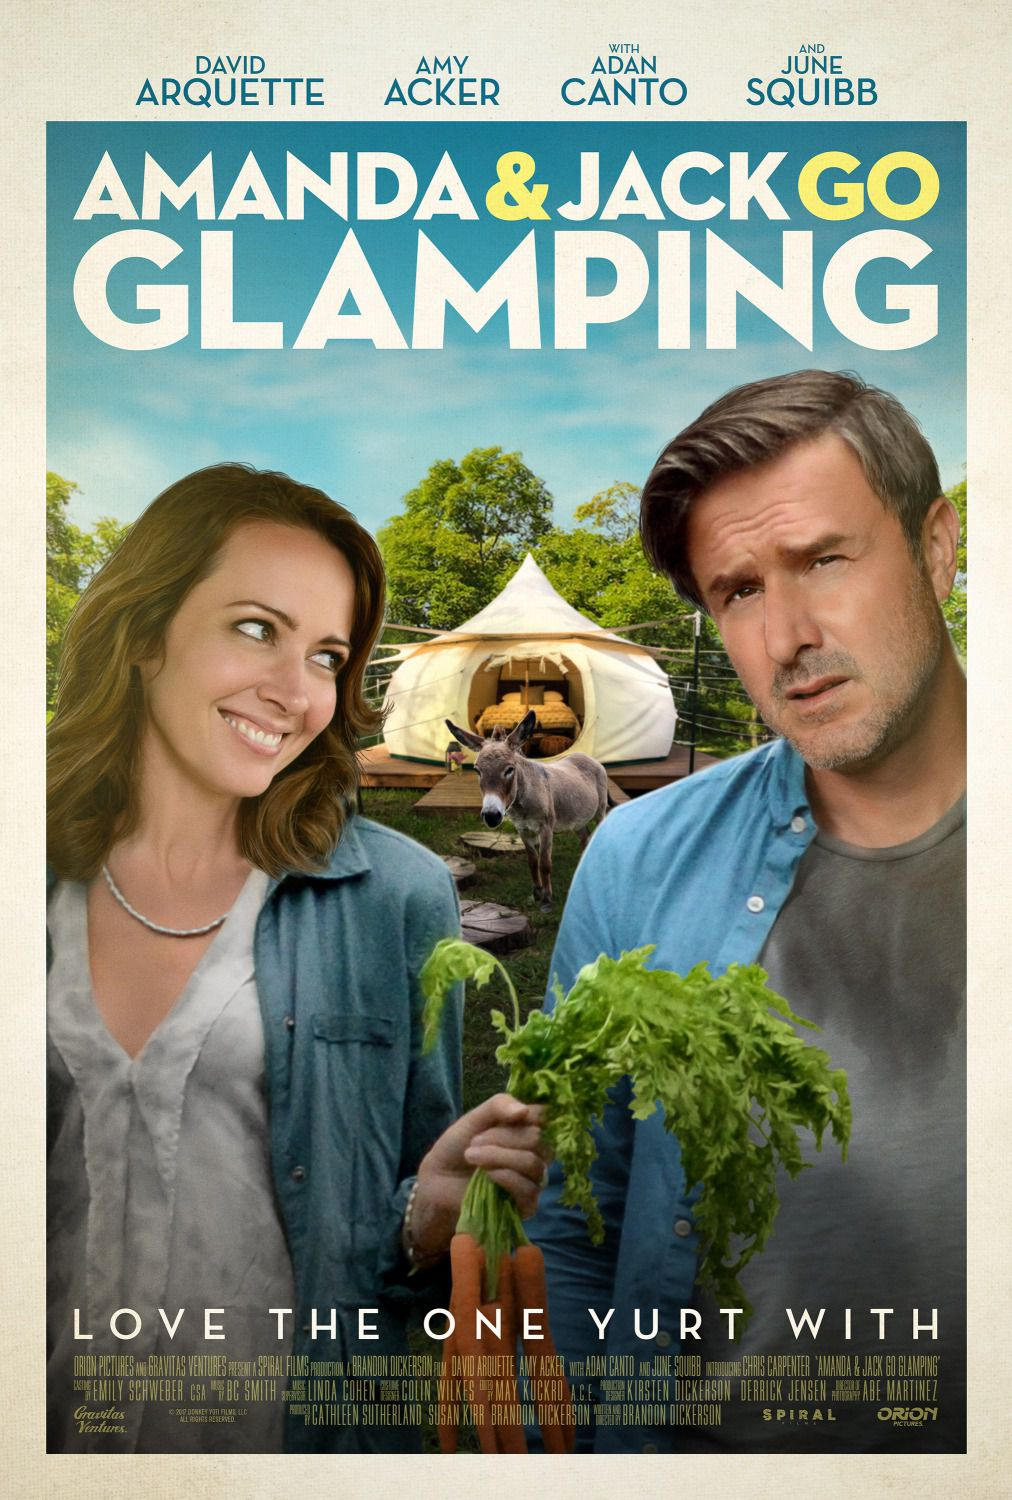 Amanda and Jack go Glamping - Couples Vacation